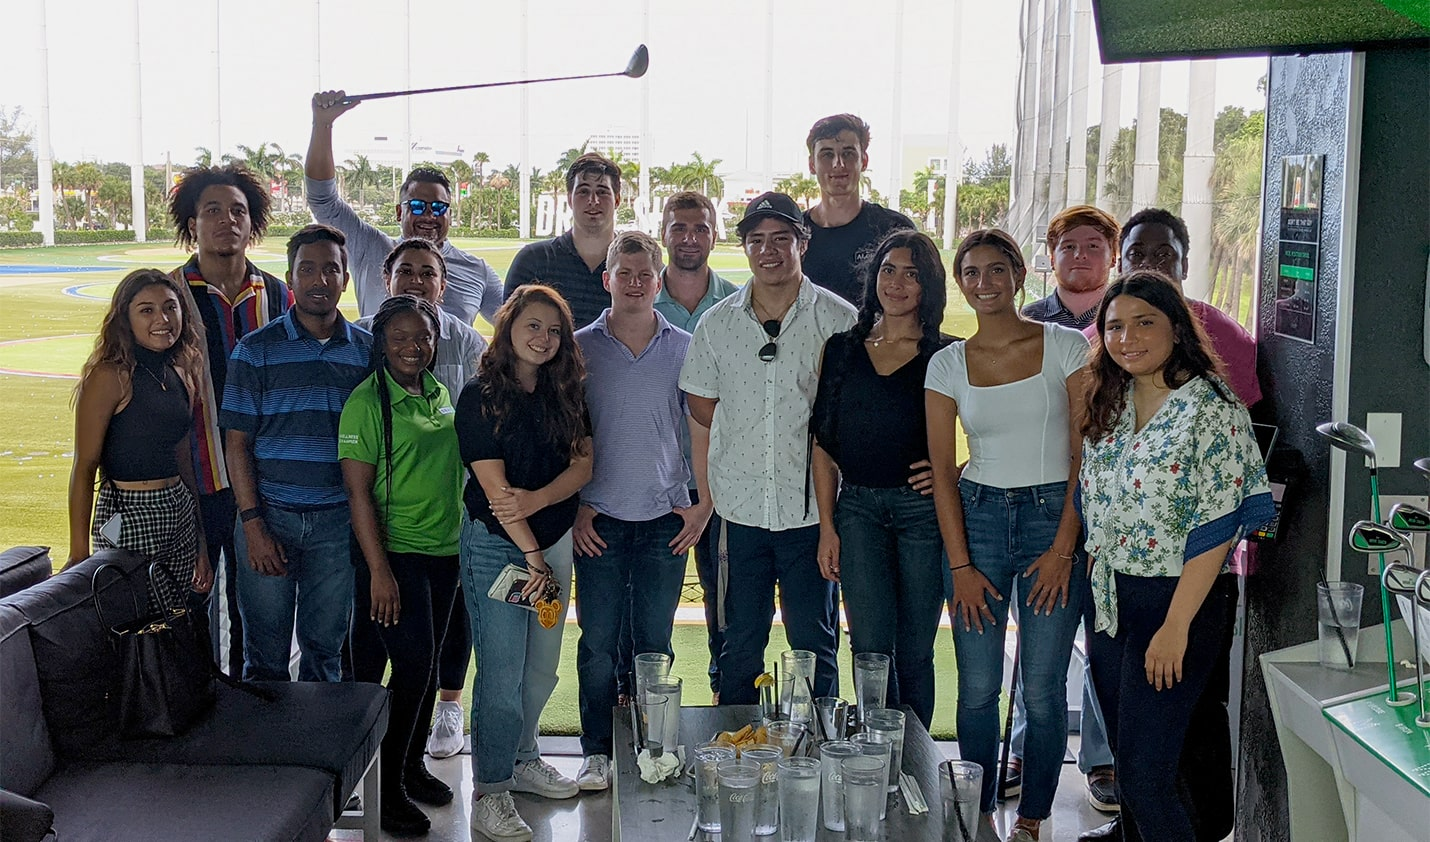 Group of interns posing together